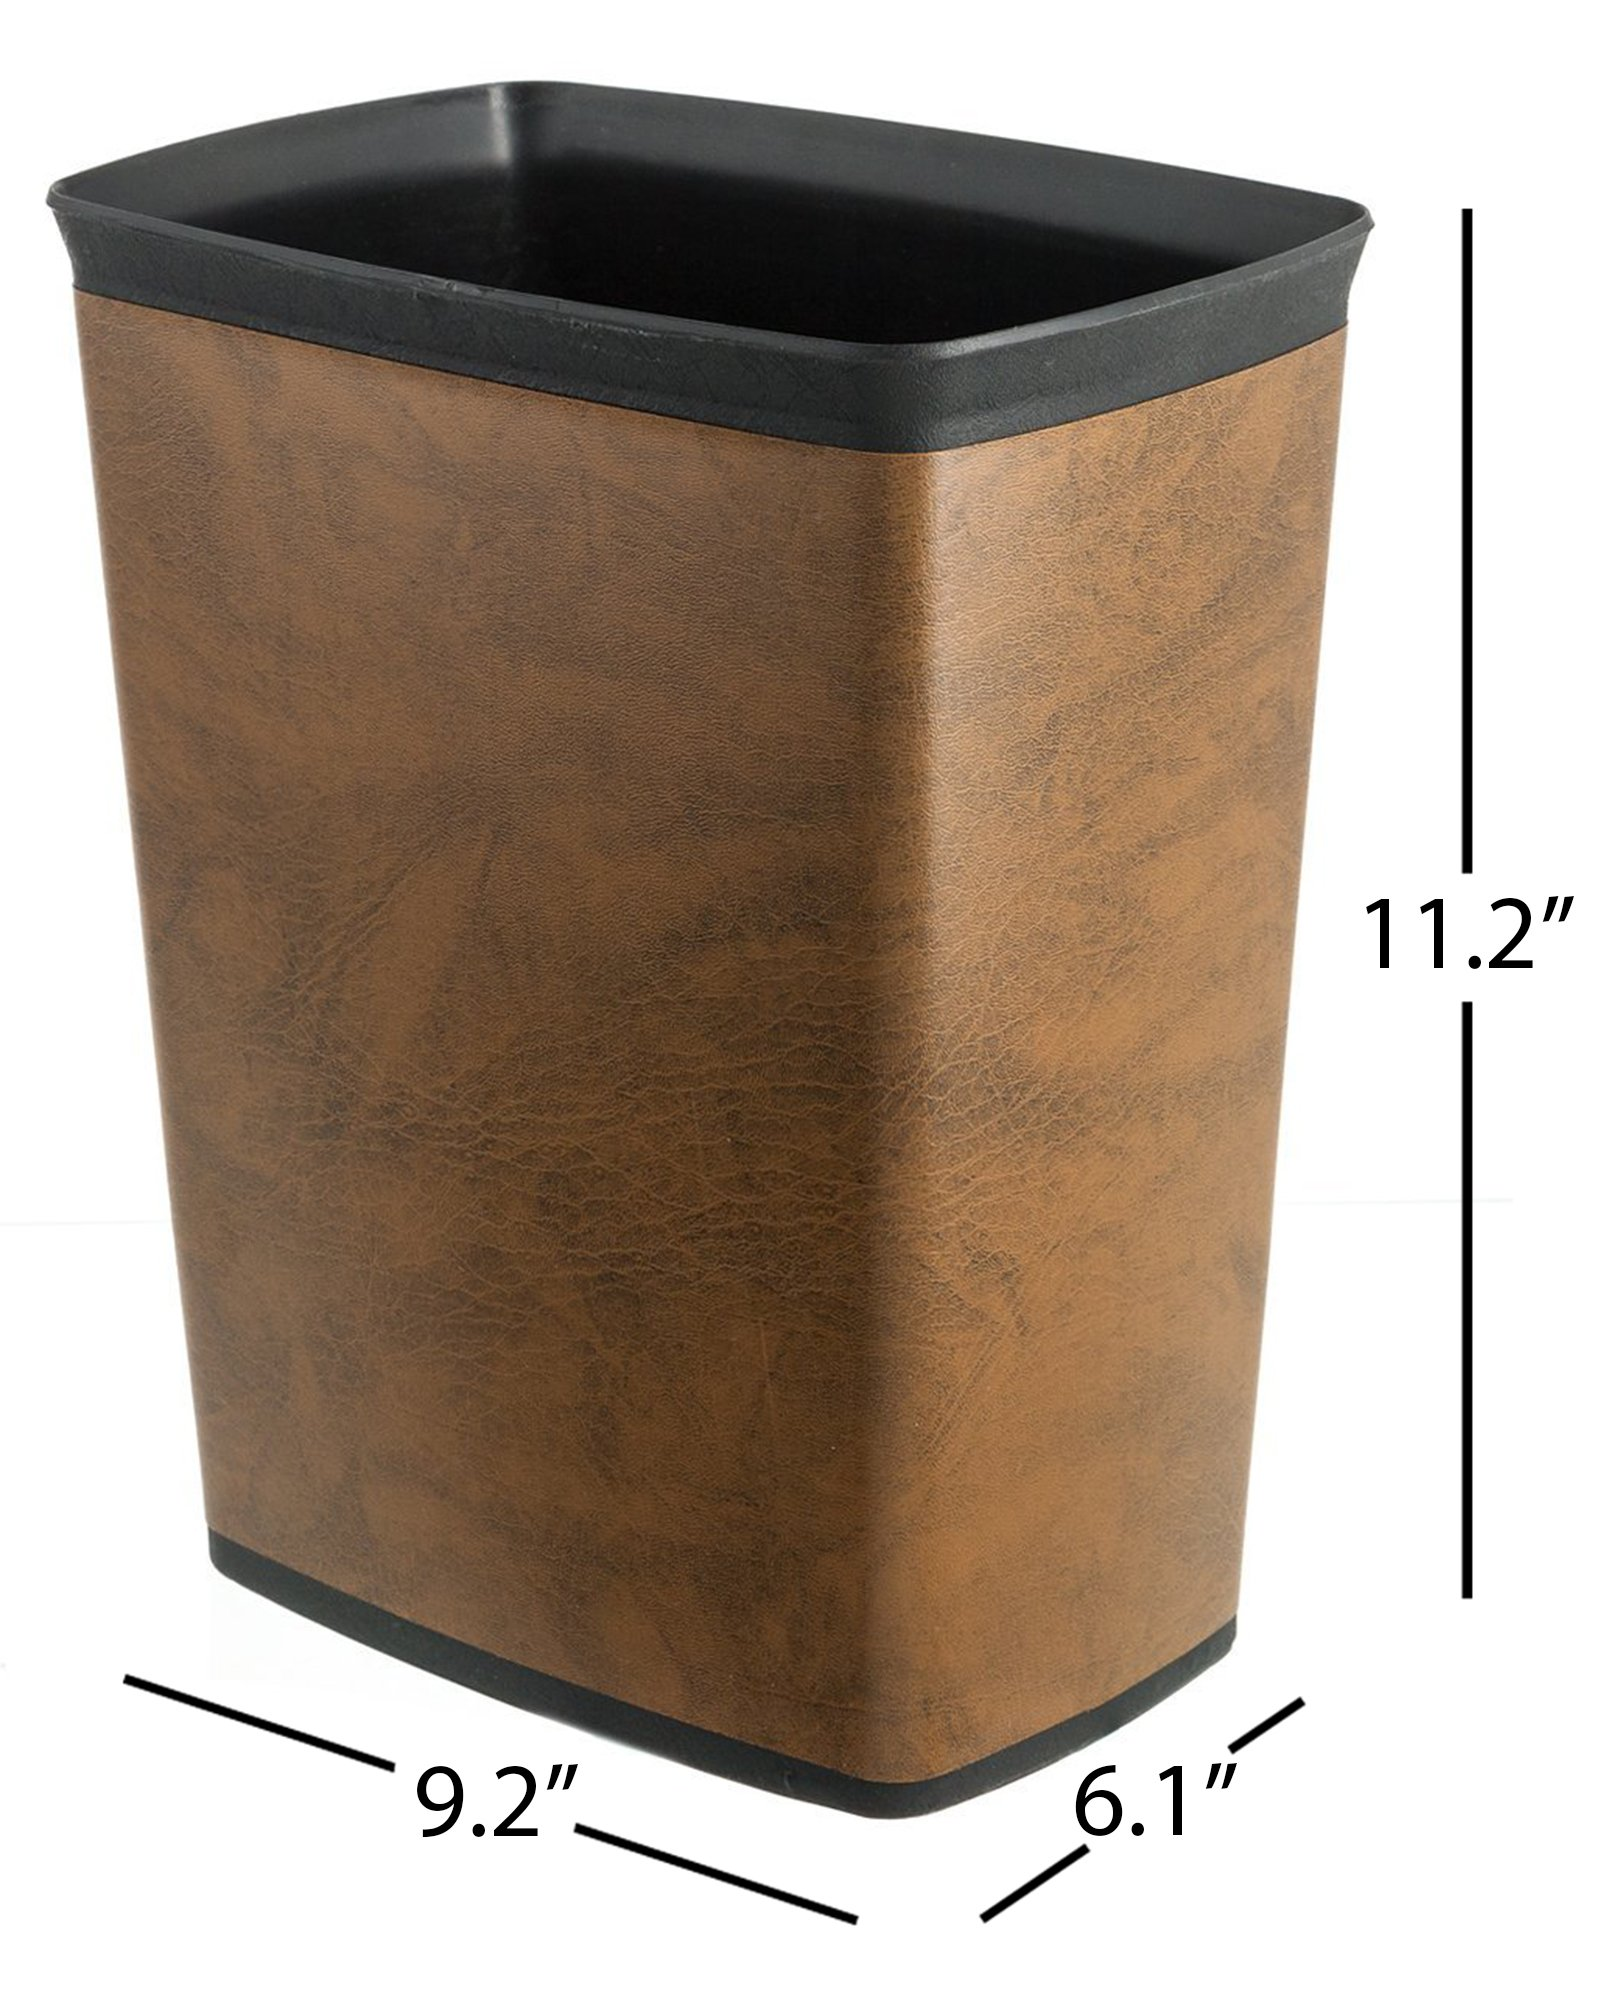 Bennett ''Plasbin'' Trash Can, Small Office Plastic Wastebasket, Leatherette Finish Modern Home Décor, Rectangle Shape (Brown)